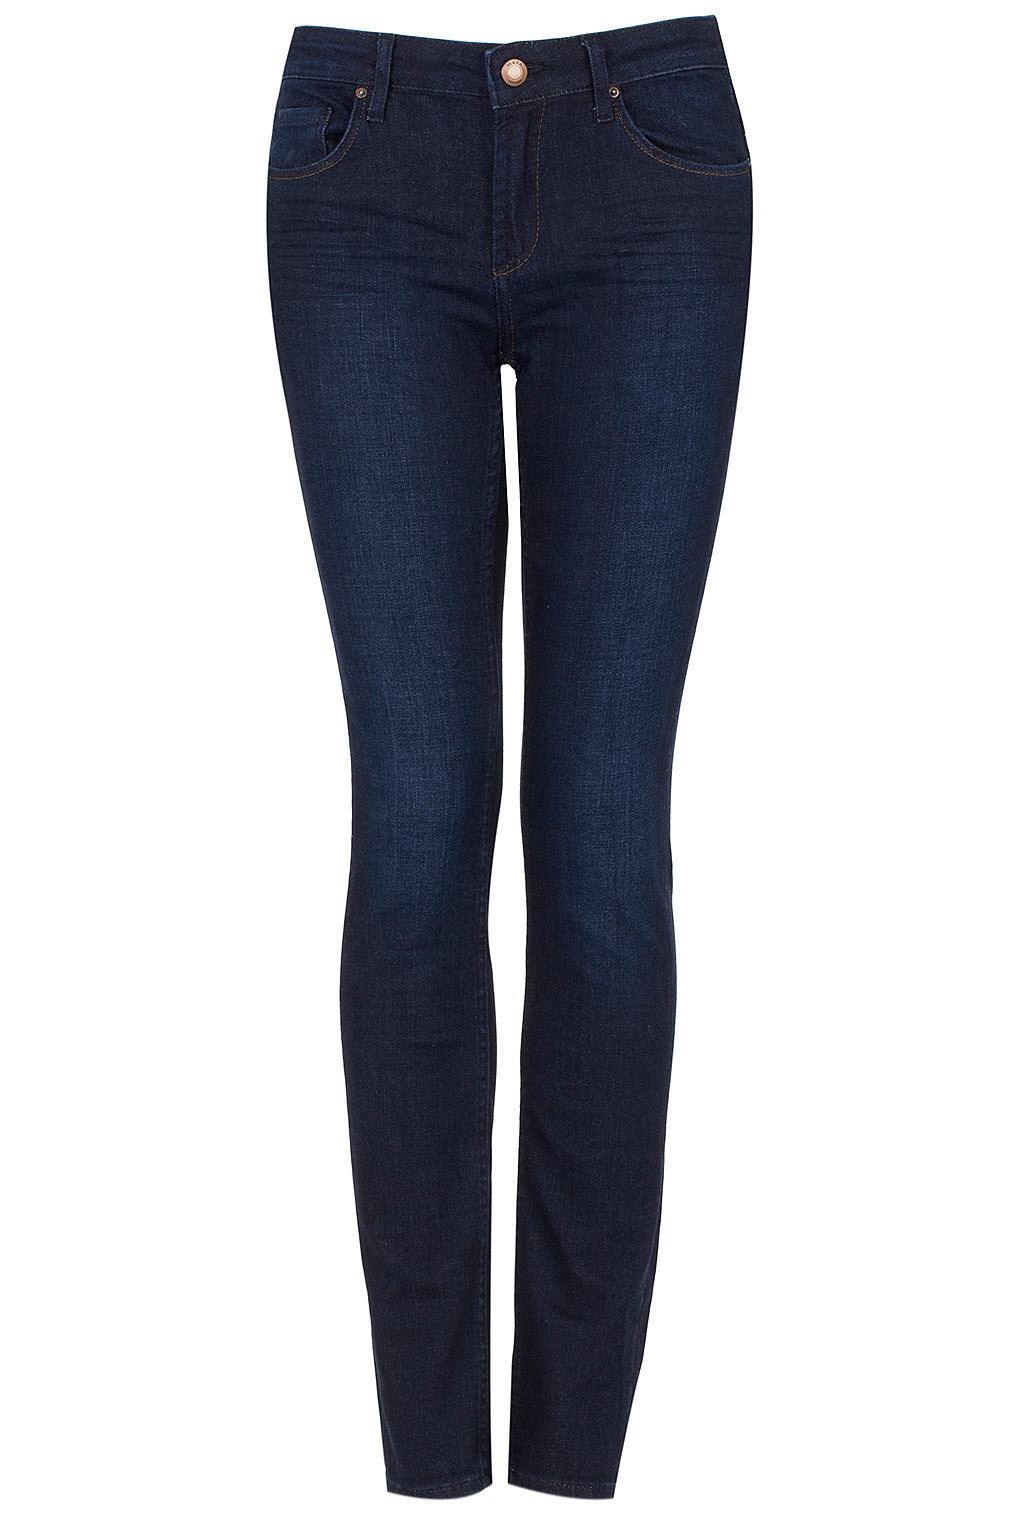 Topshop Moto Indigo Baxter Skinny Jeans in Blue | Lyst